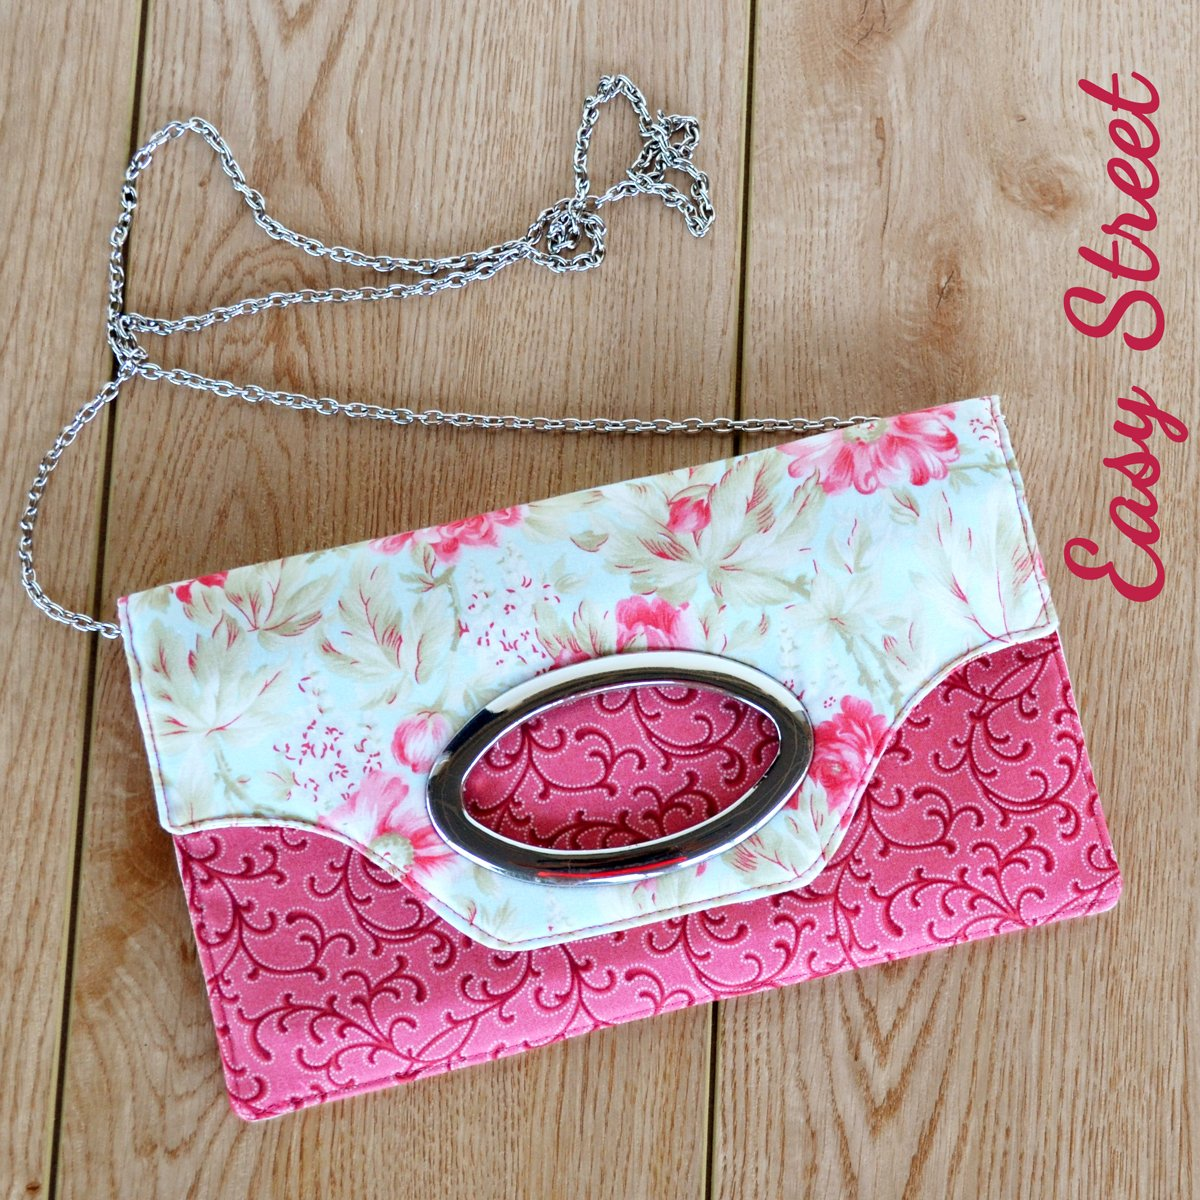 Chloe's Court Clutch by ChrisW Designs